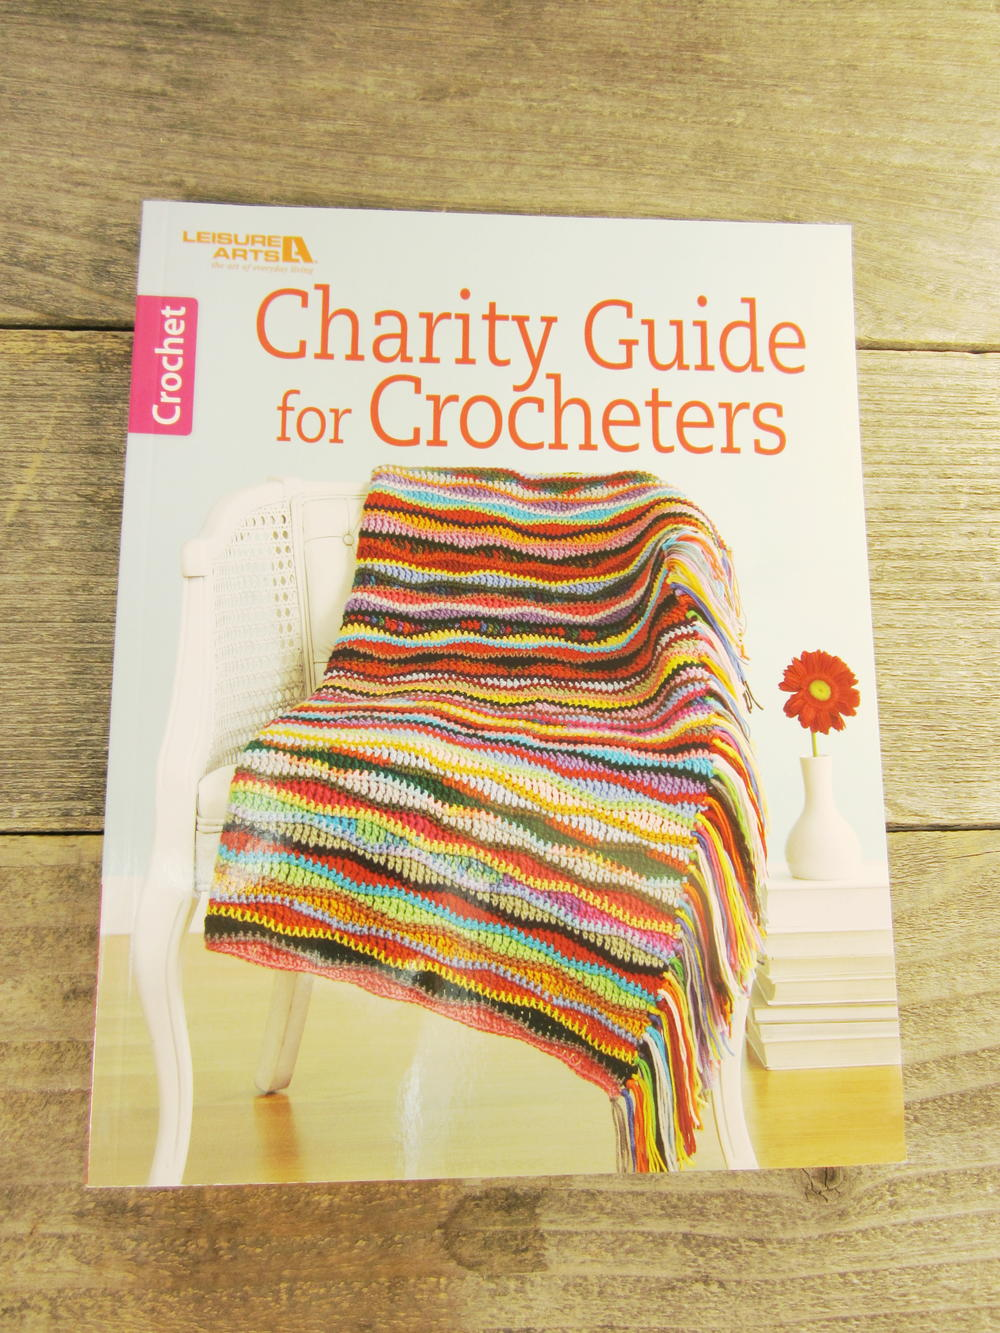 Crochet For Charity : Charity Guide for Crocheters AllFreeCrochet.com